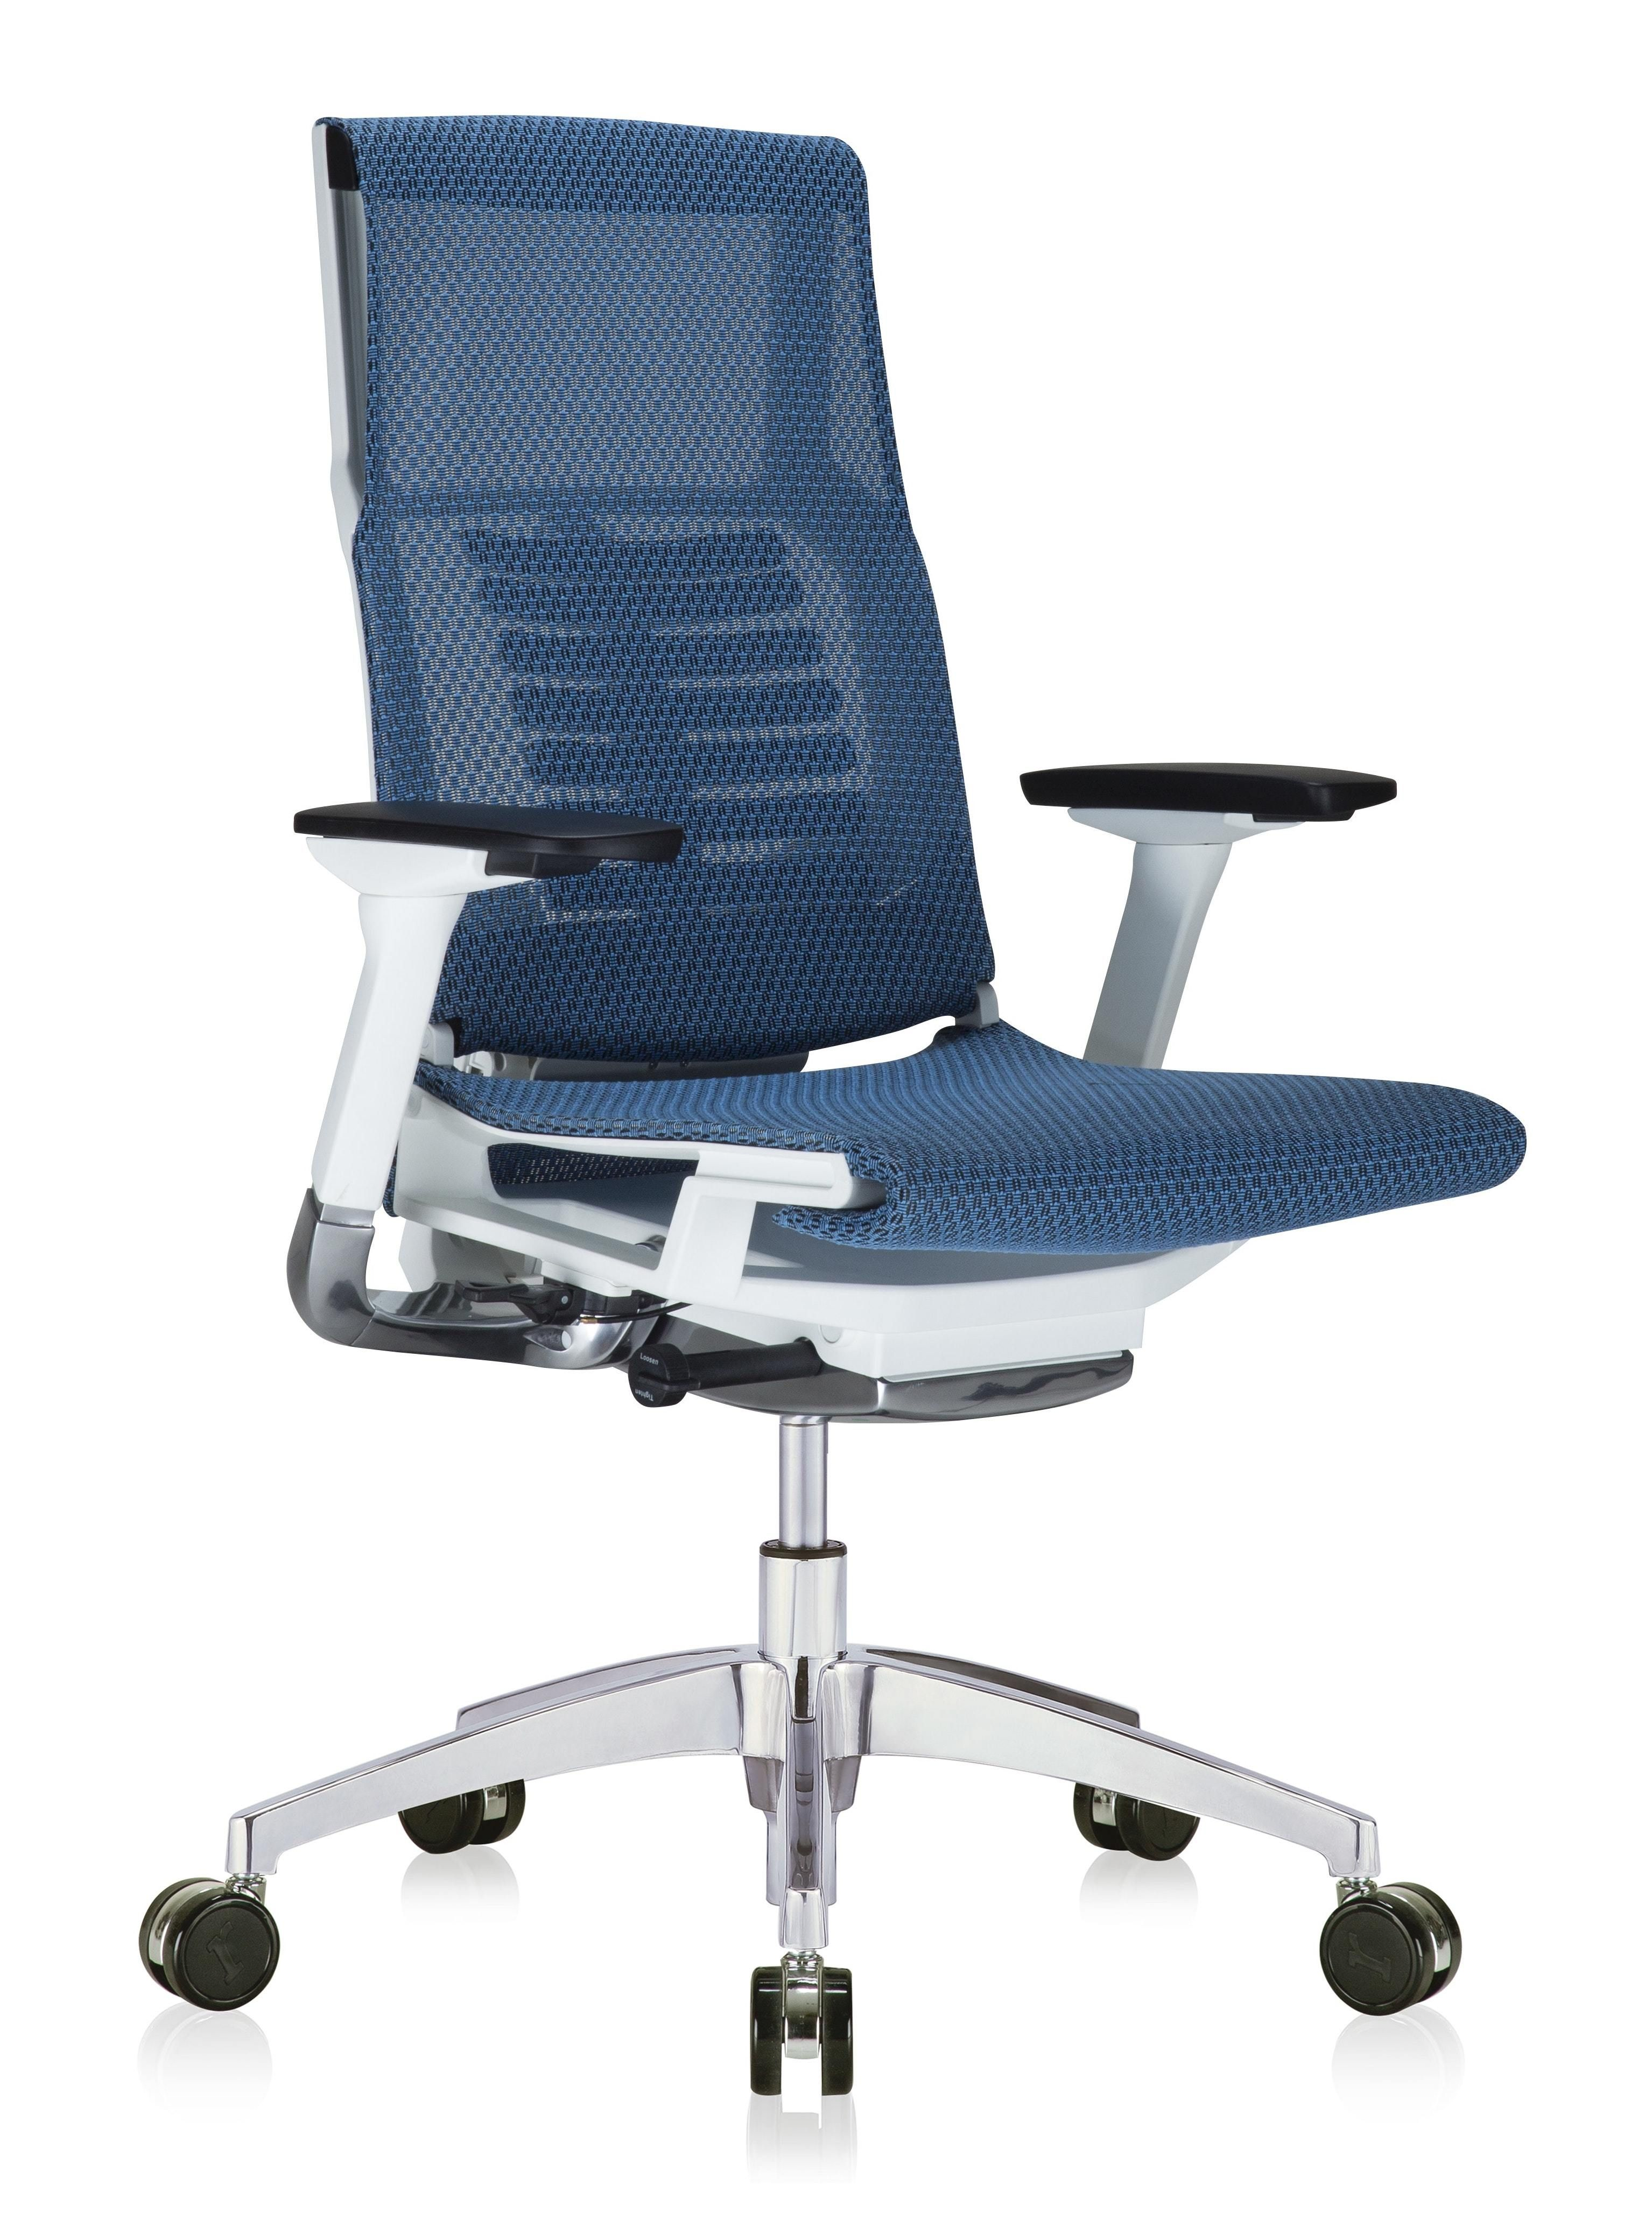 Eurotech powerfit all mesh bionic chair with white frame